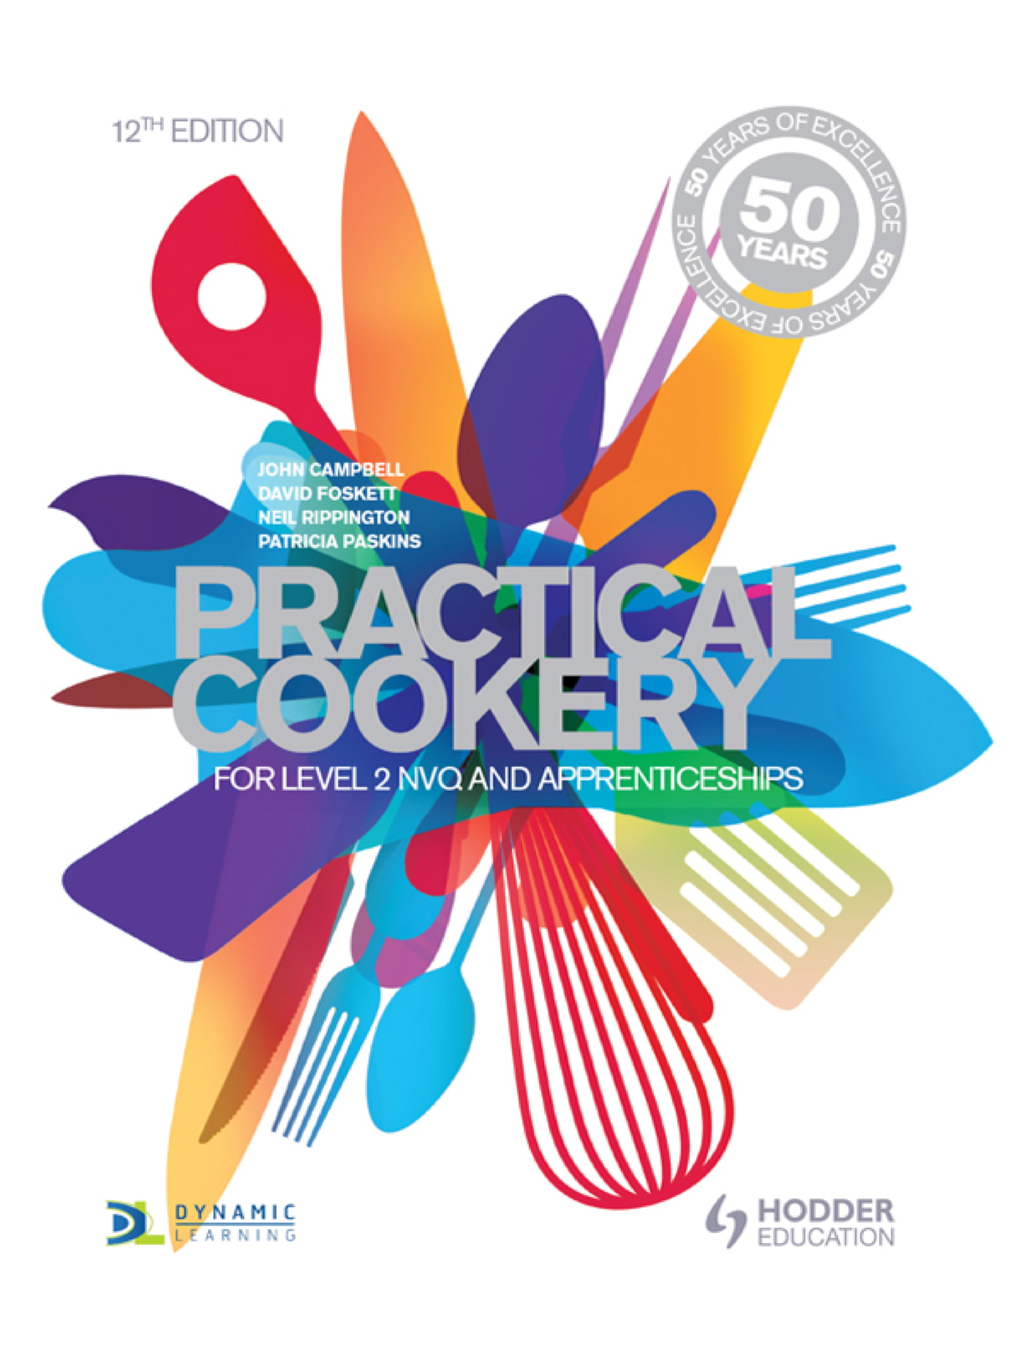 Practical Cookery, 12th Edition